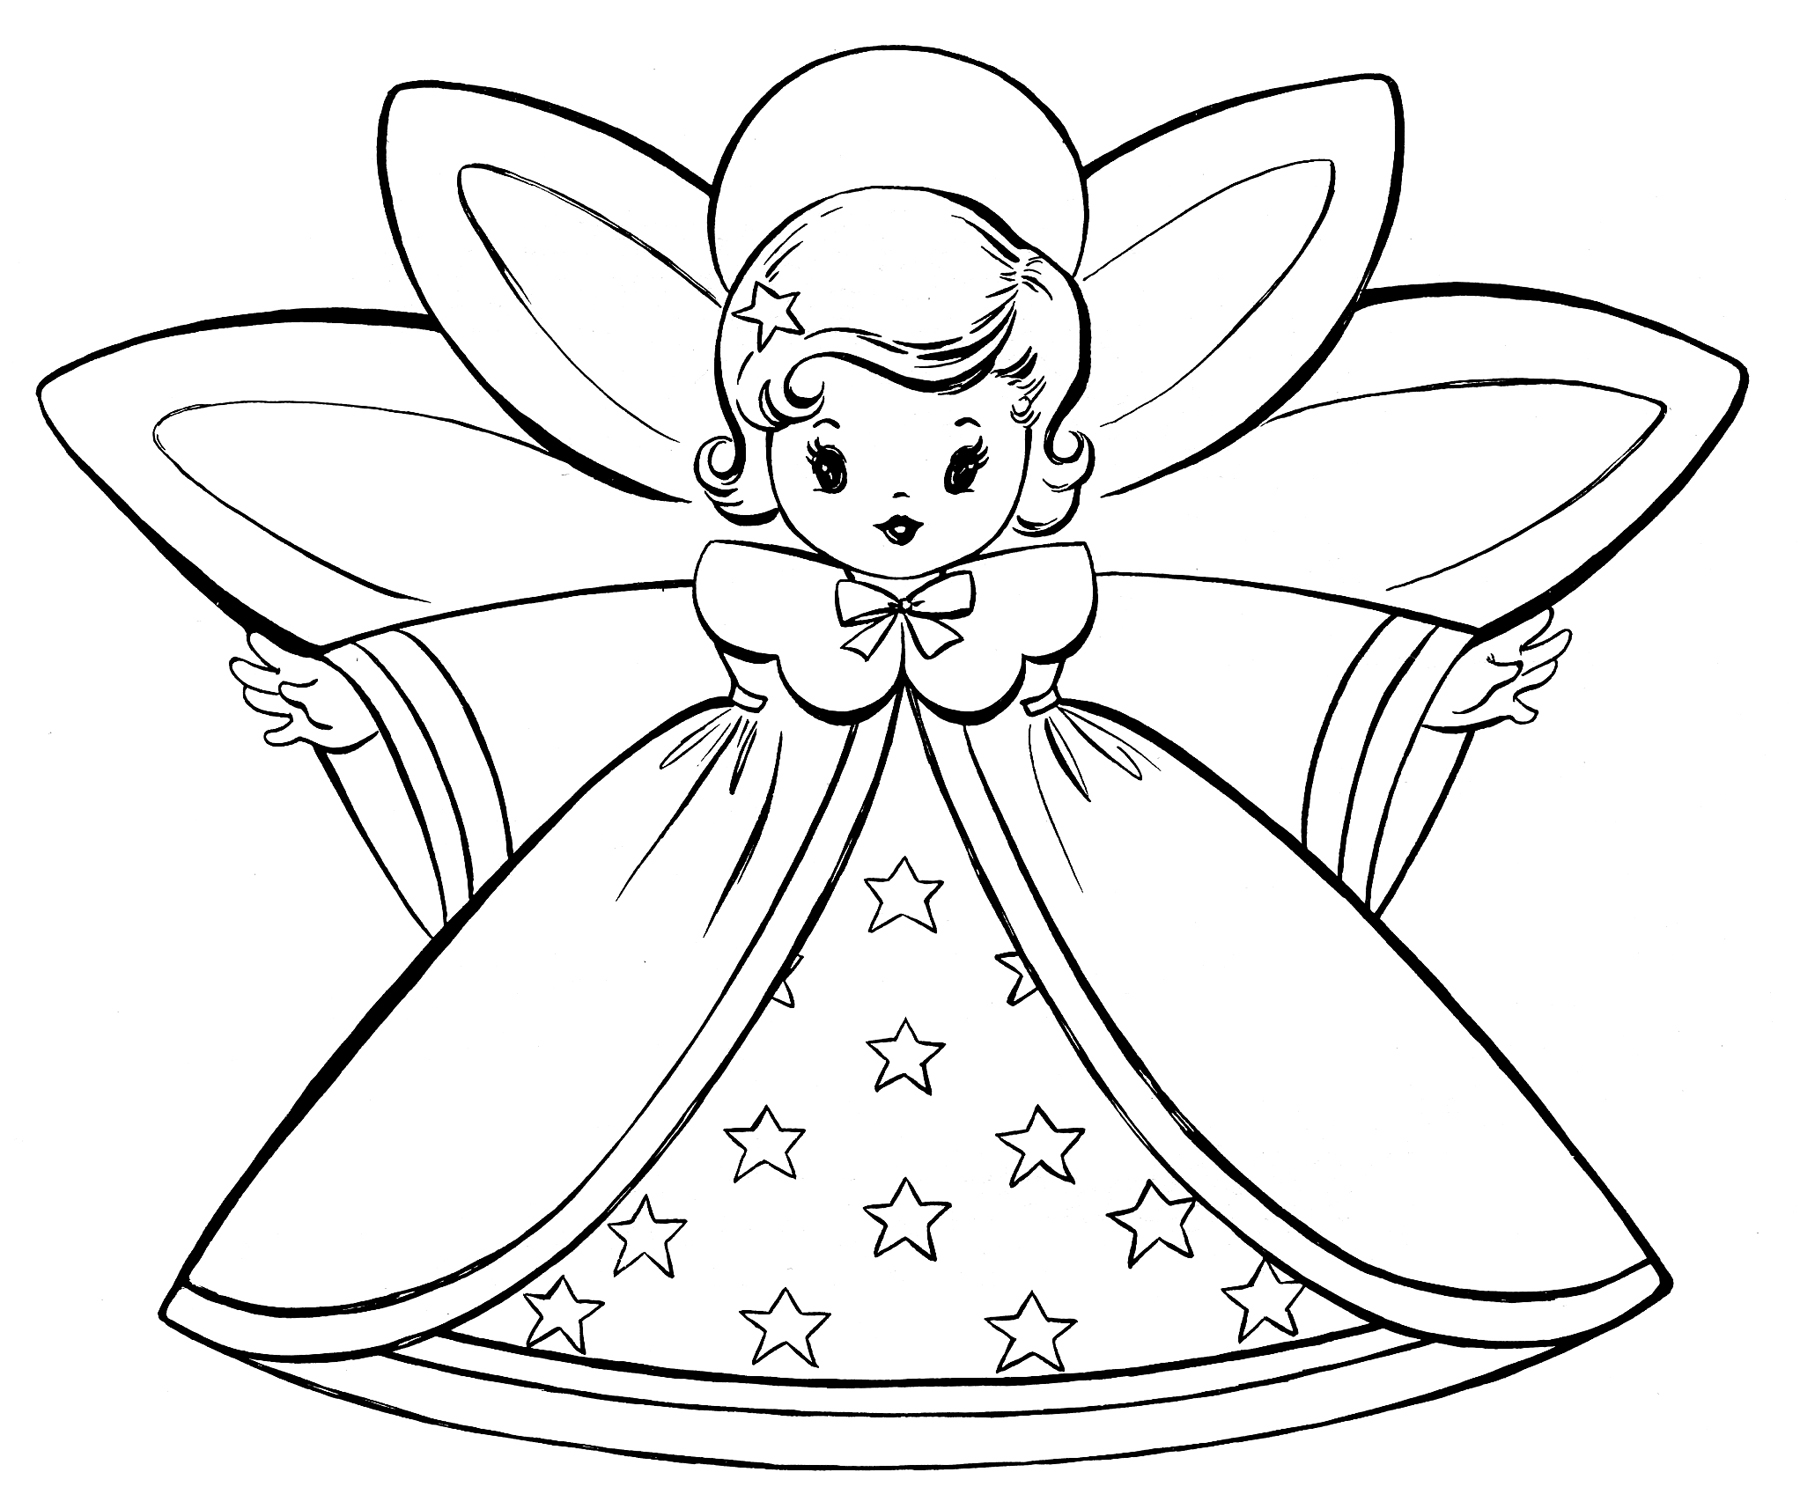 Free Christmas Coloring Pages - Retro Angels - The ...